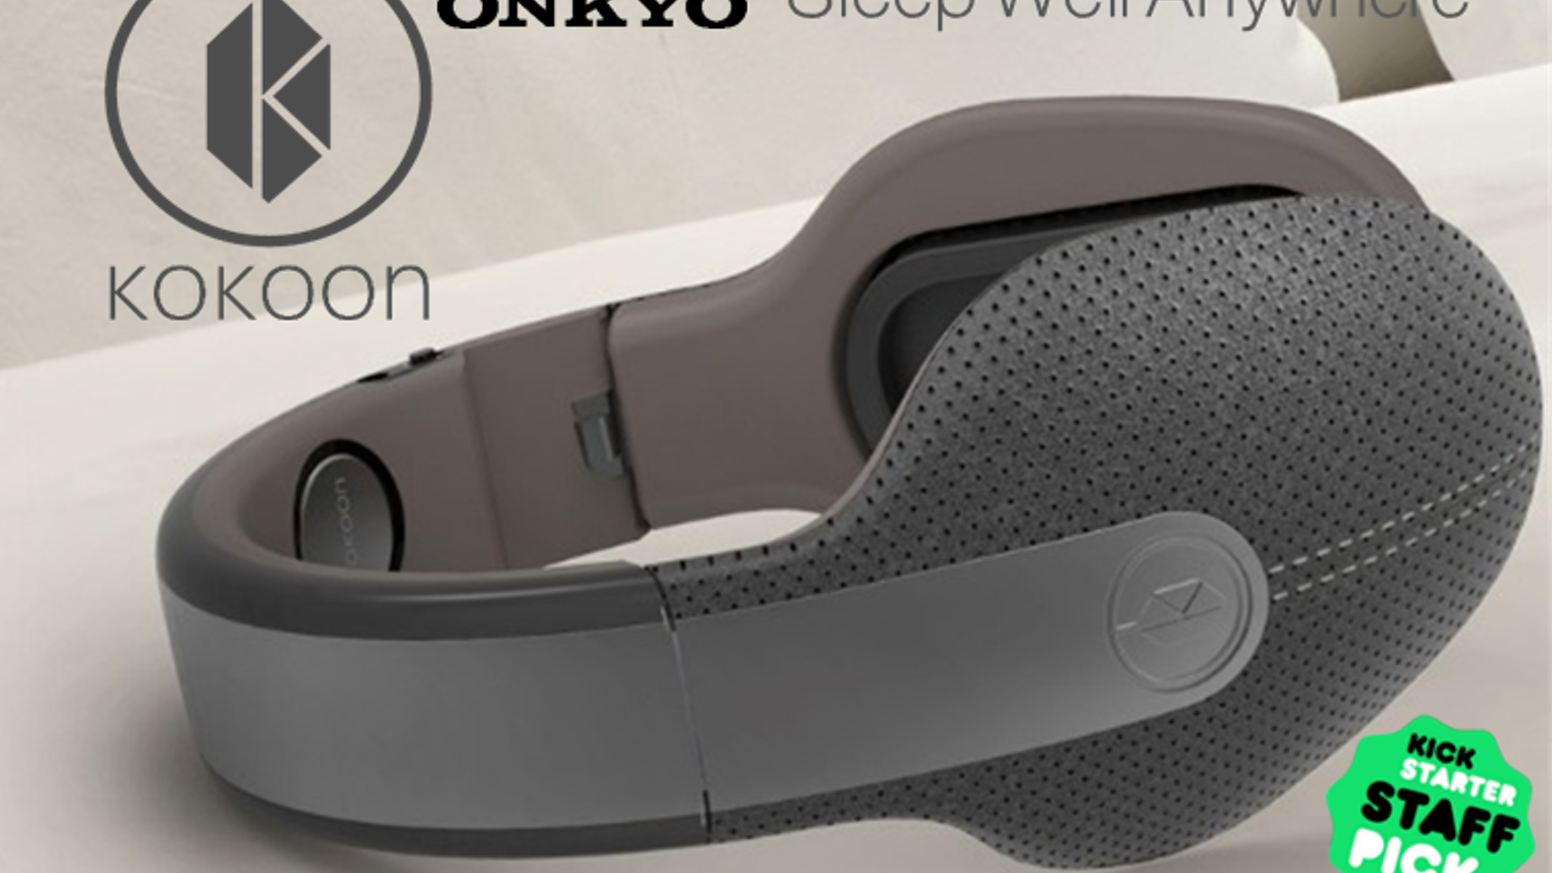 The ultimate sleep sanctuary: Kokoon EEG headphones by Tim — Kickstarter